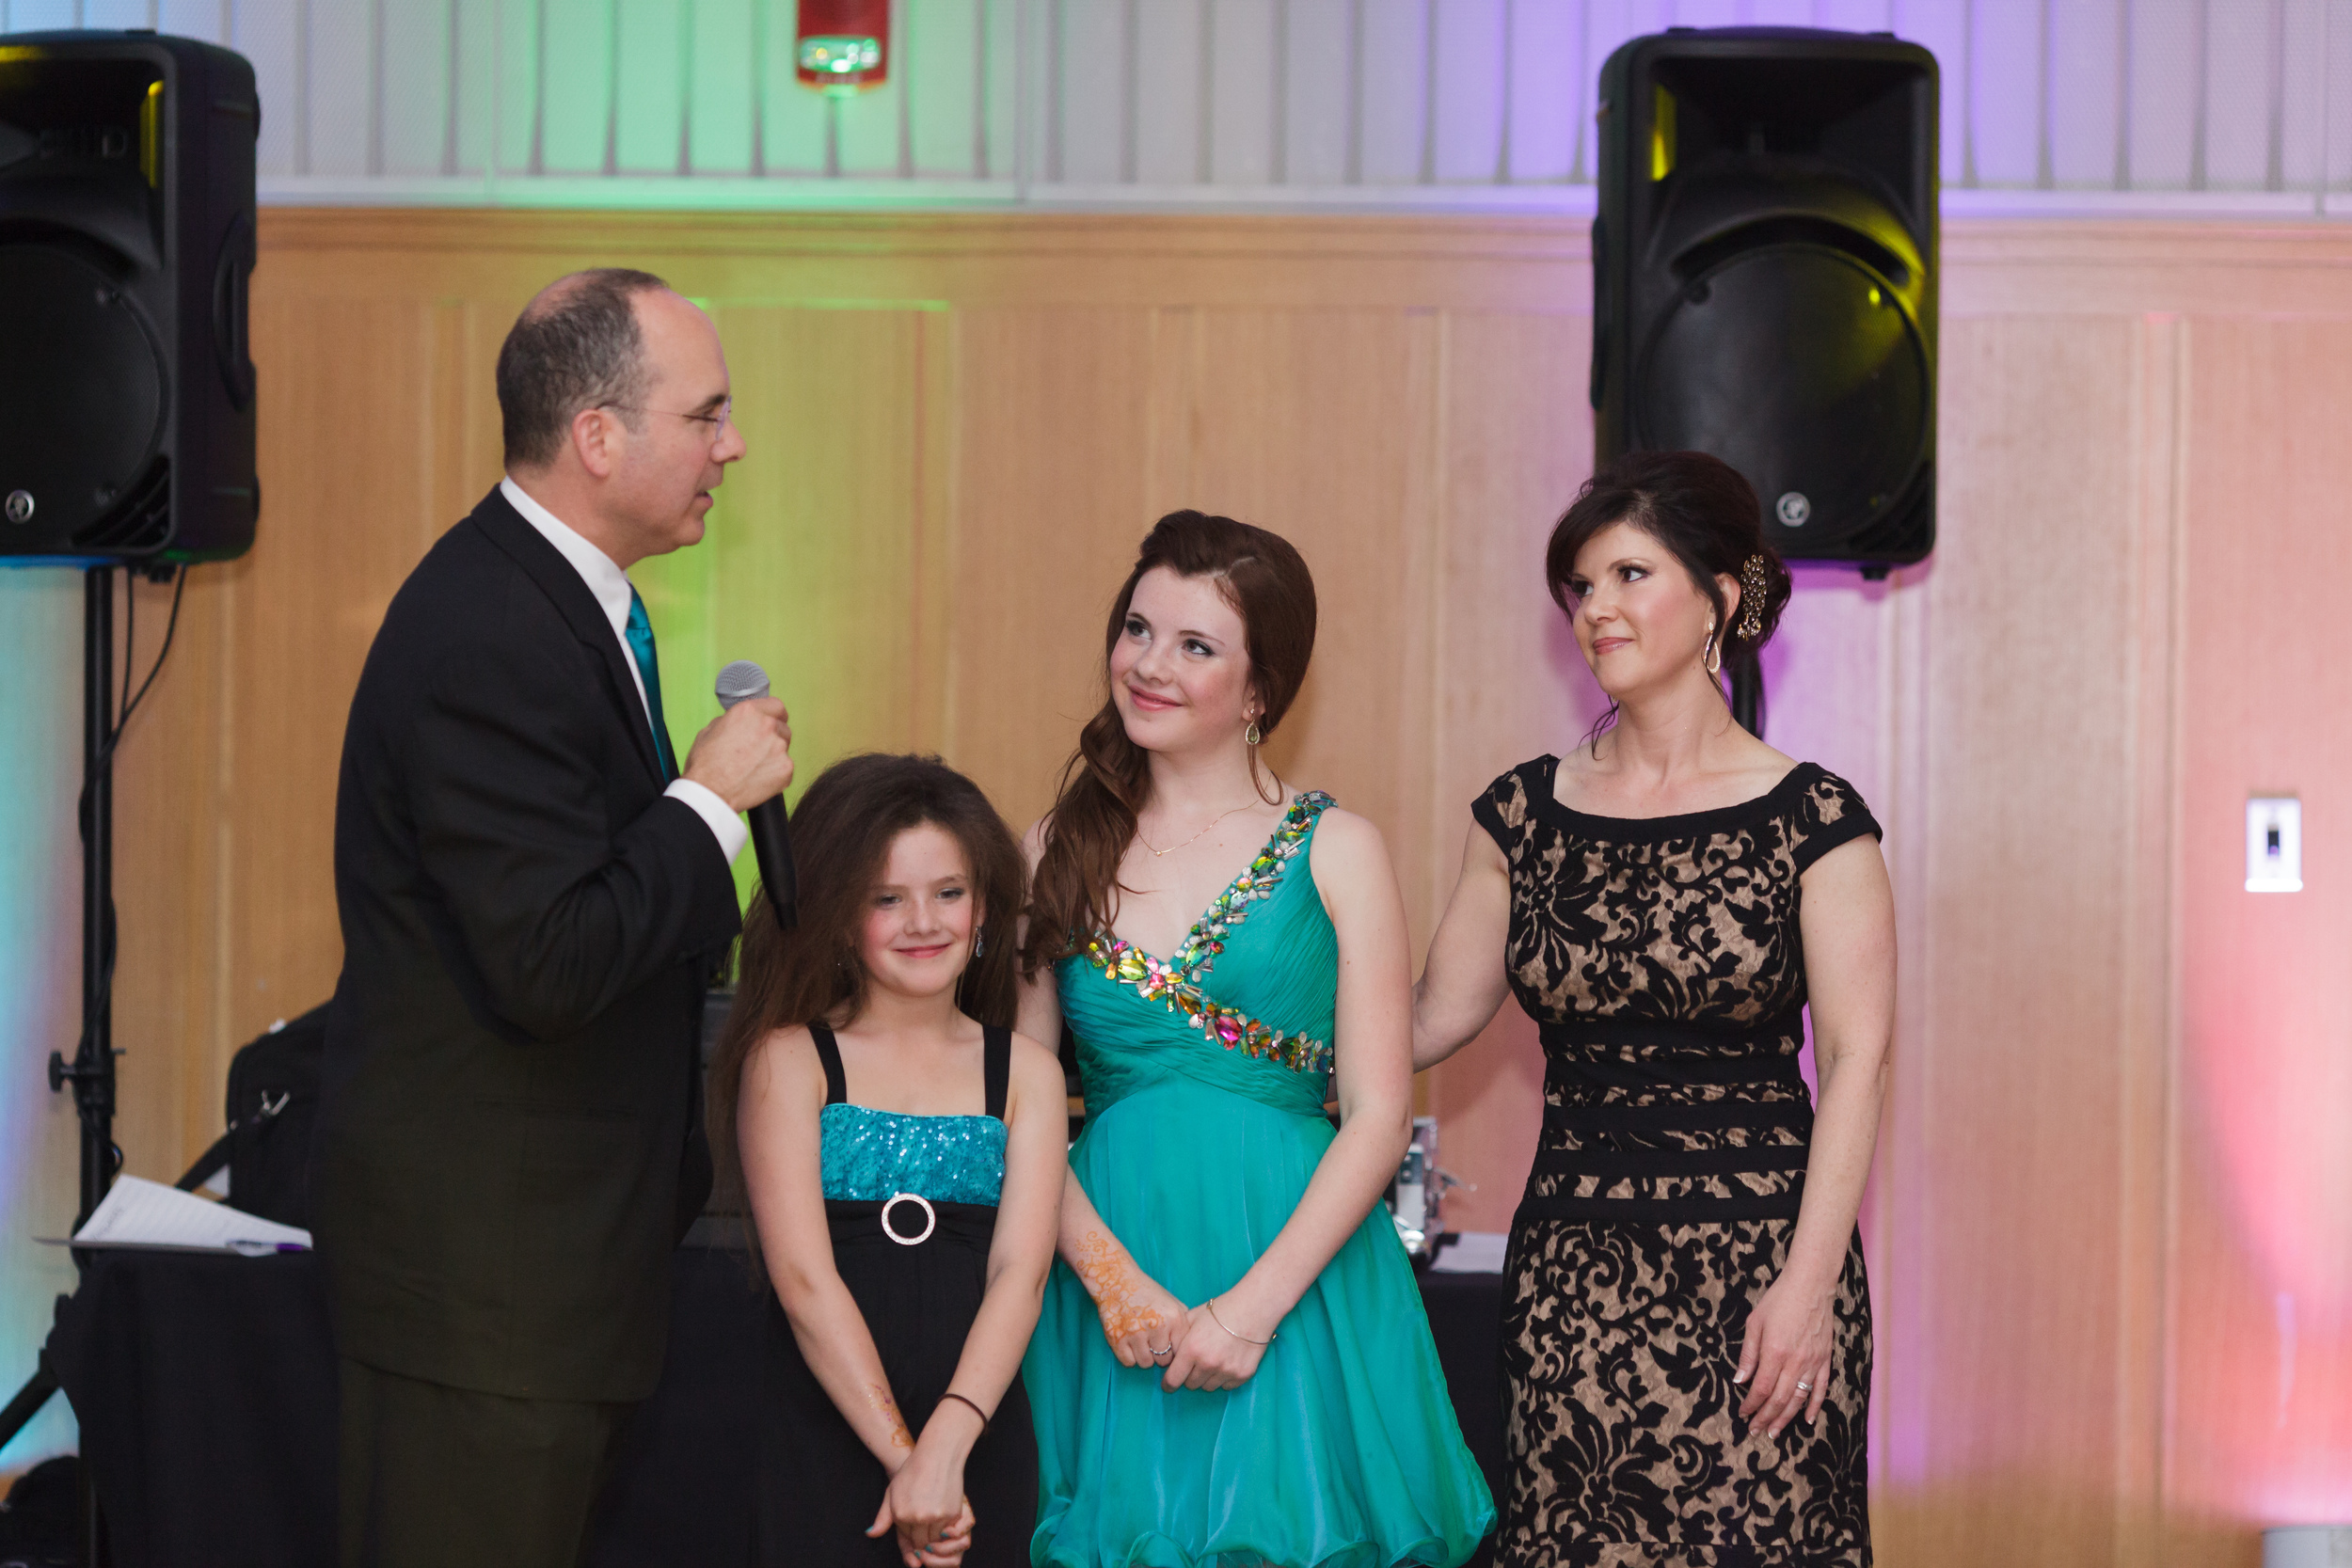 Lily_Ann_Arbor_Bat_Mitzvah_photography_24